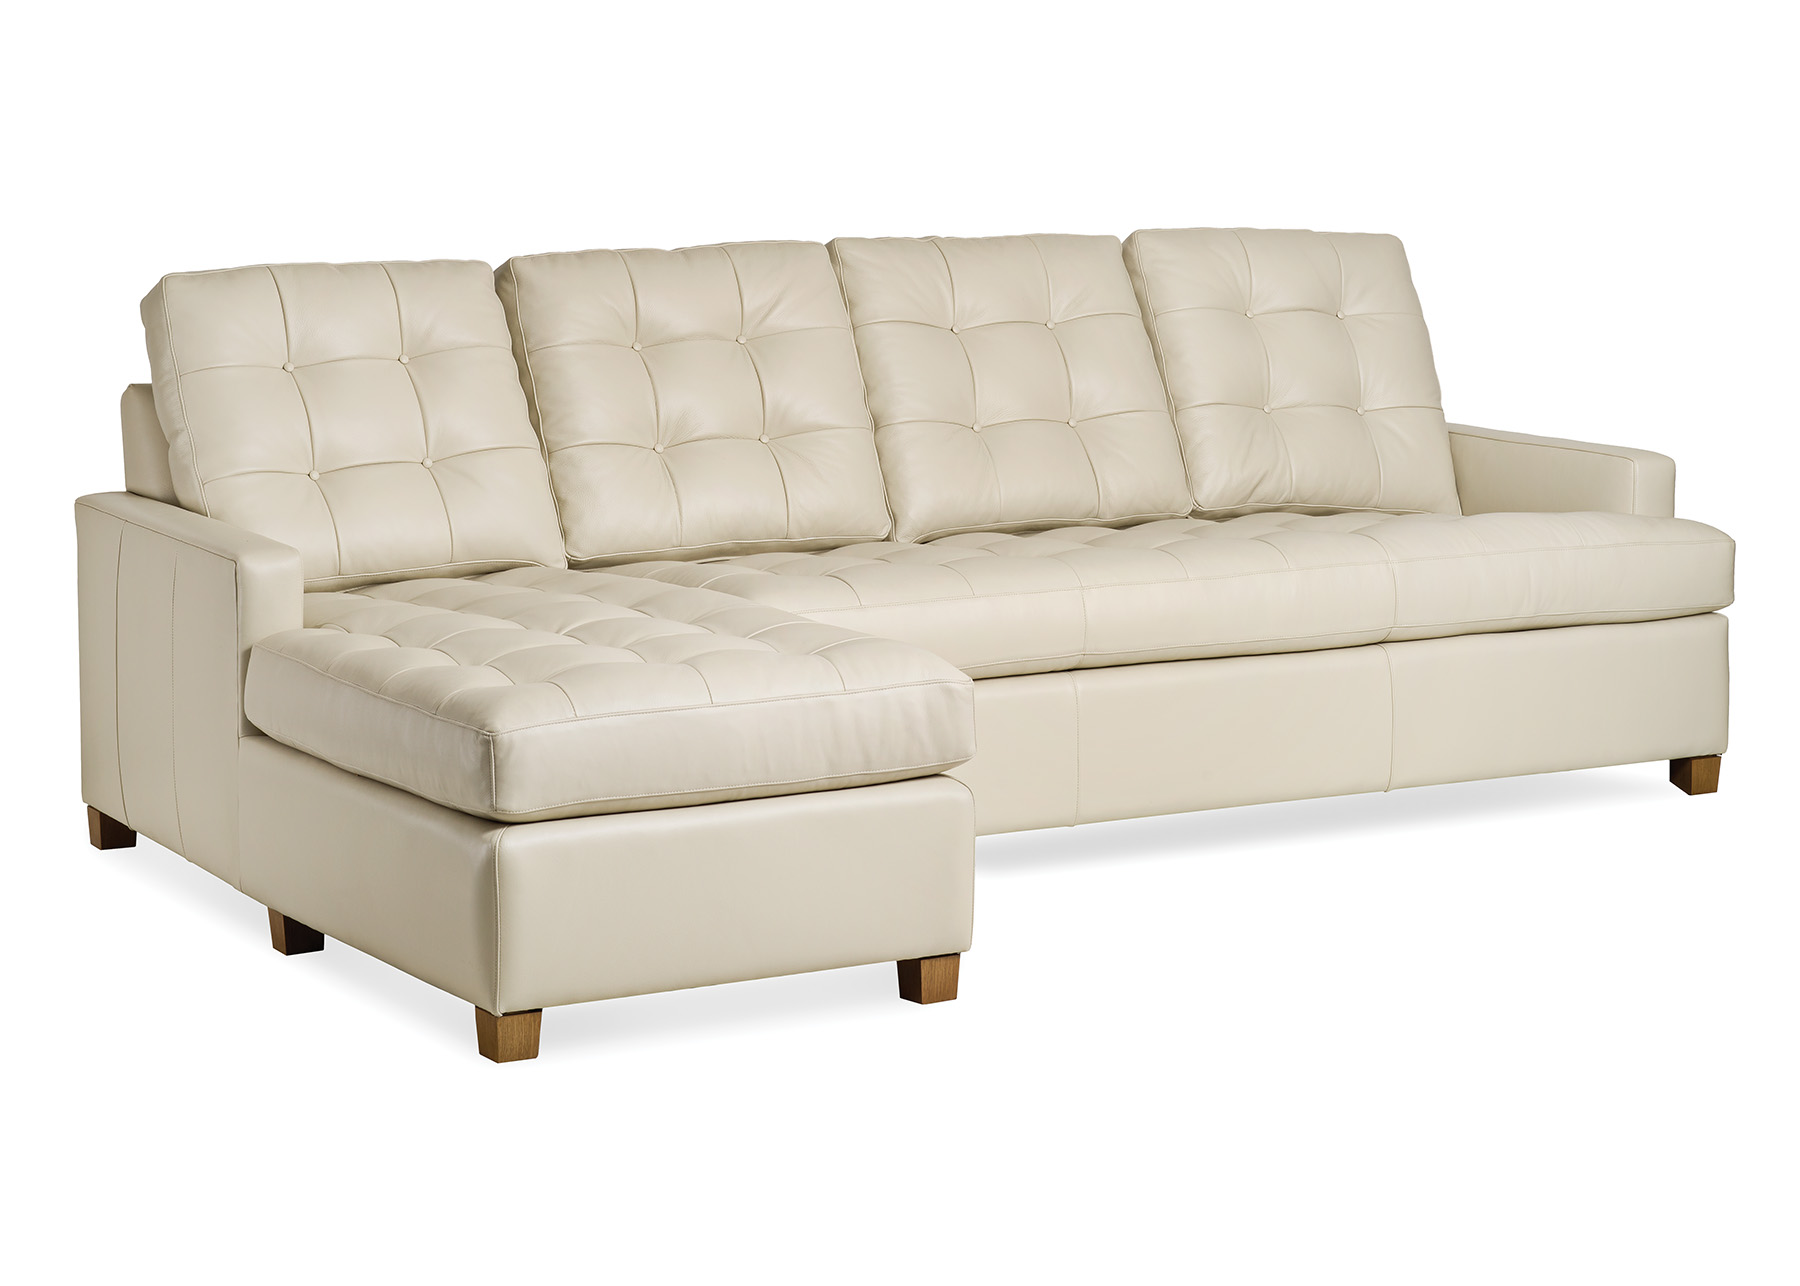 Destin Sectional Image